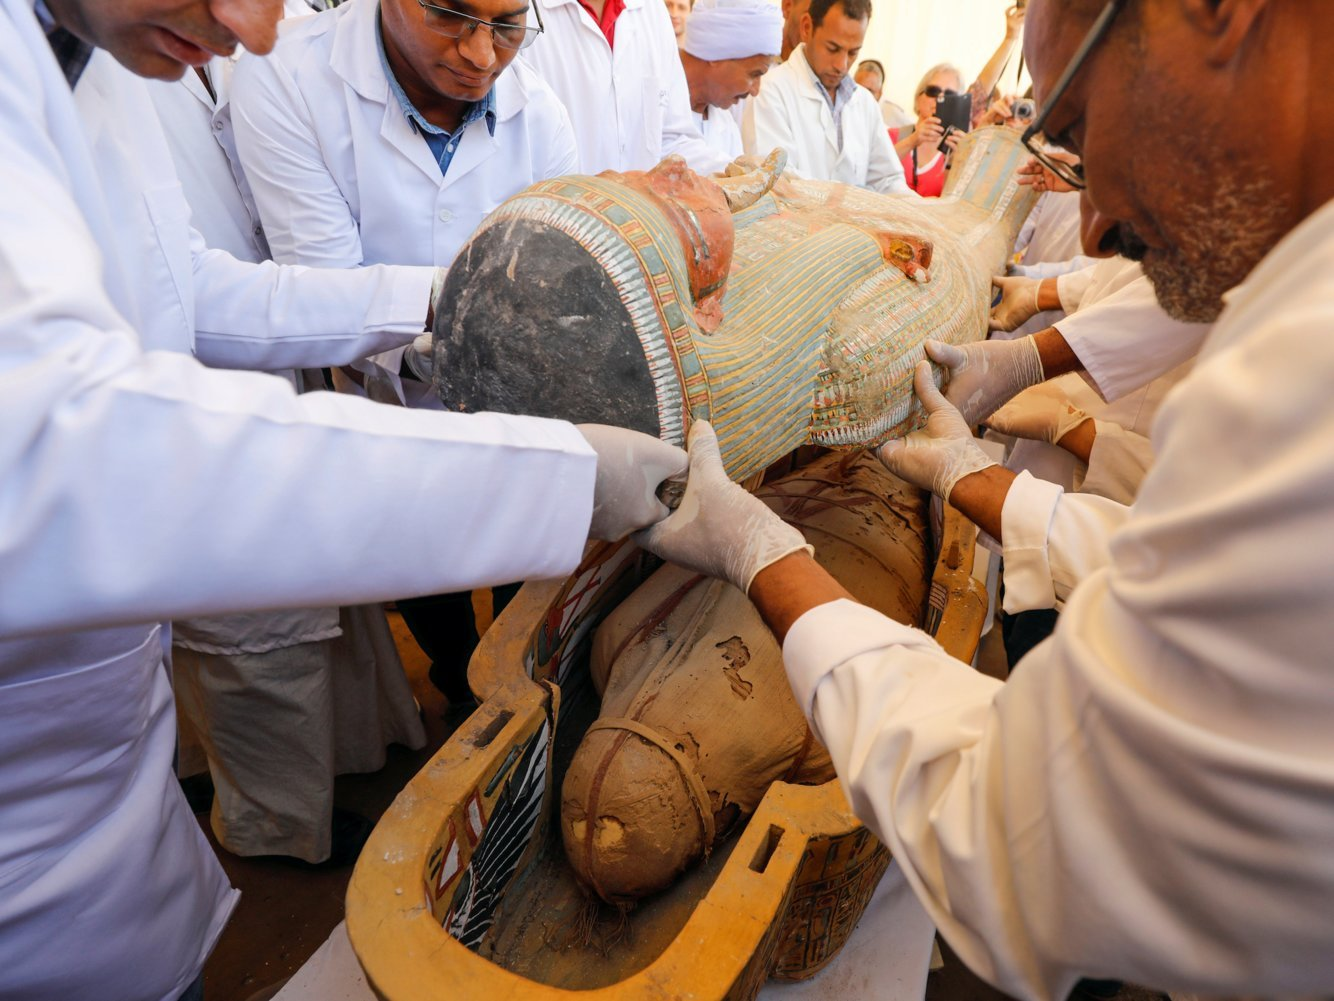 Archaeologists discovered 30 ancient sarcophagi in Egypt with perfectly preserved mummies inside. Photos show the biggest coffin find in a century.